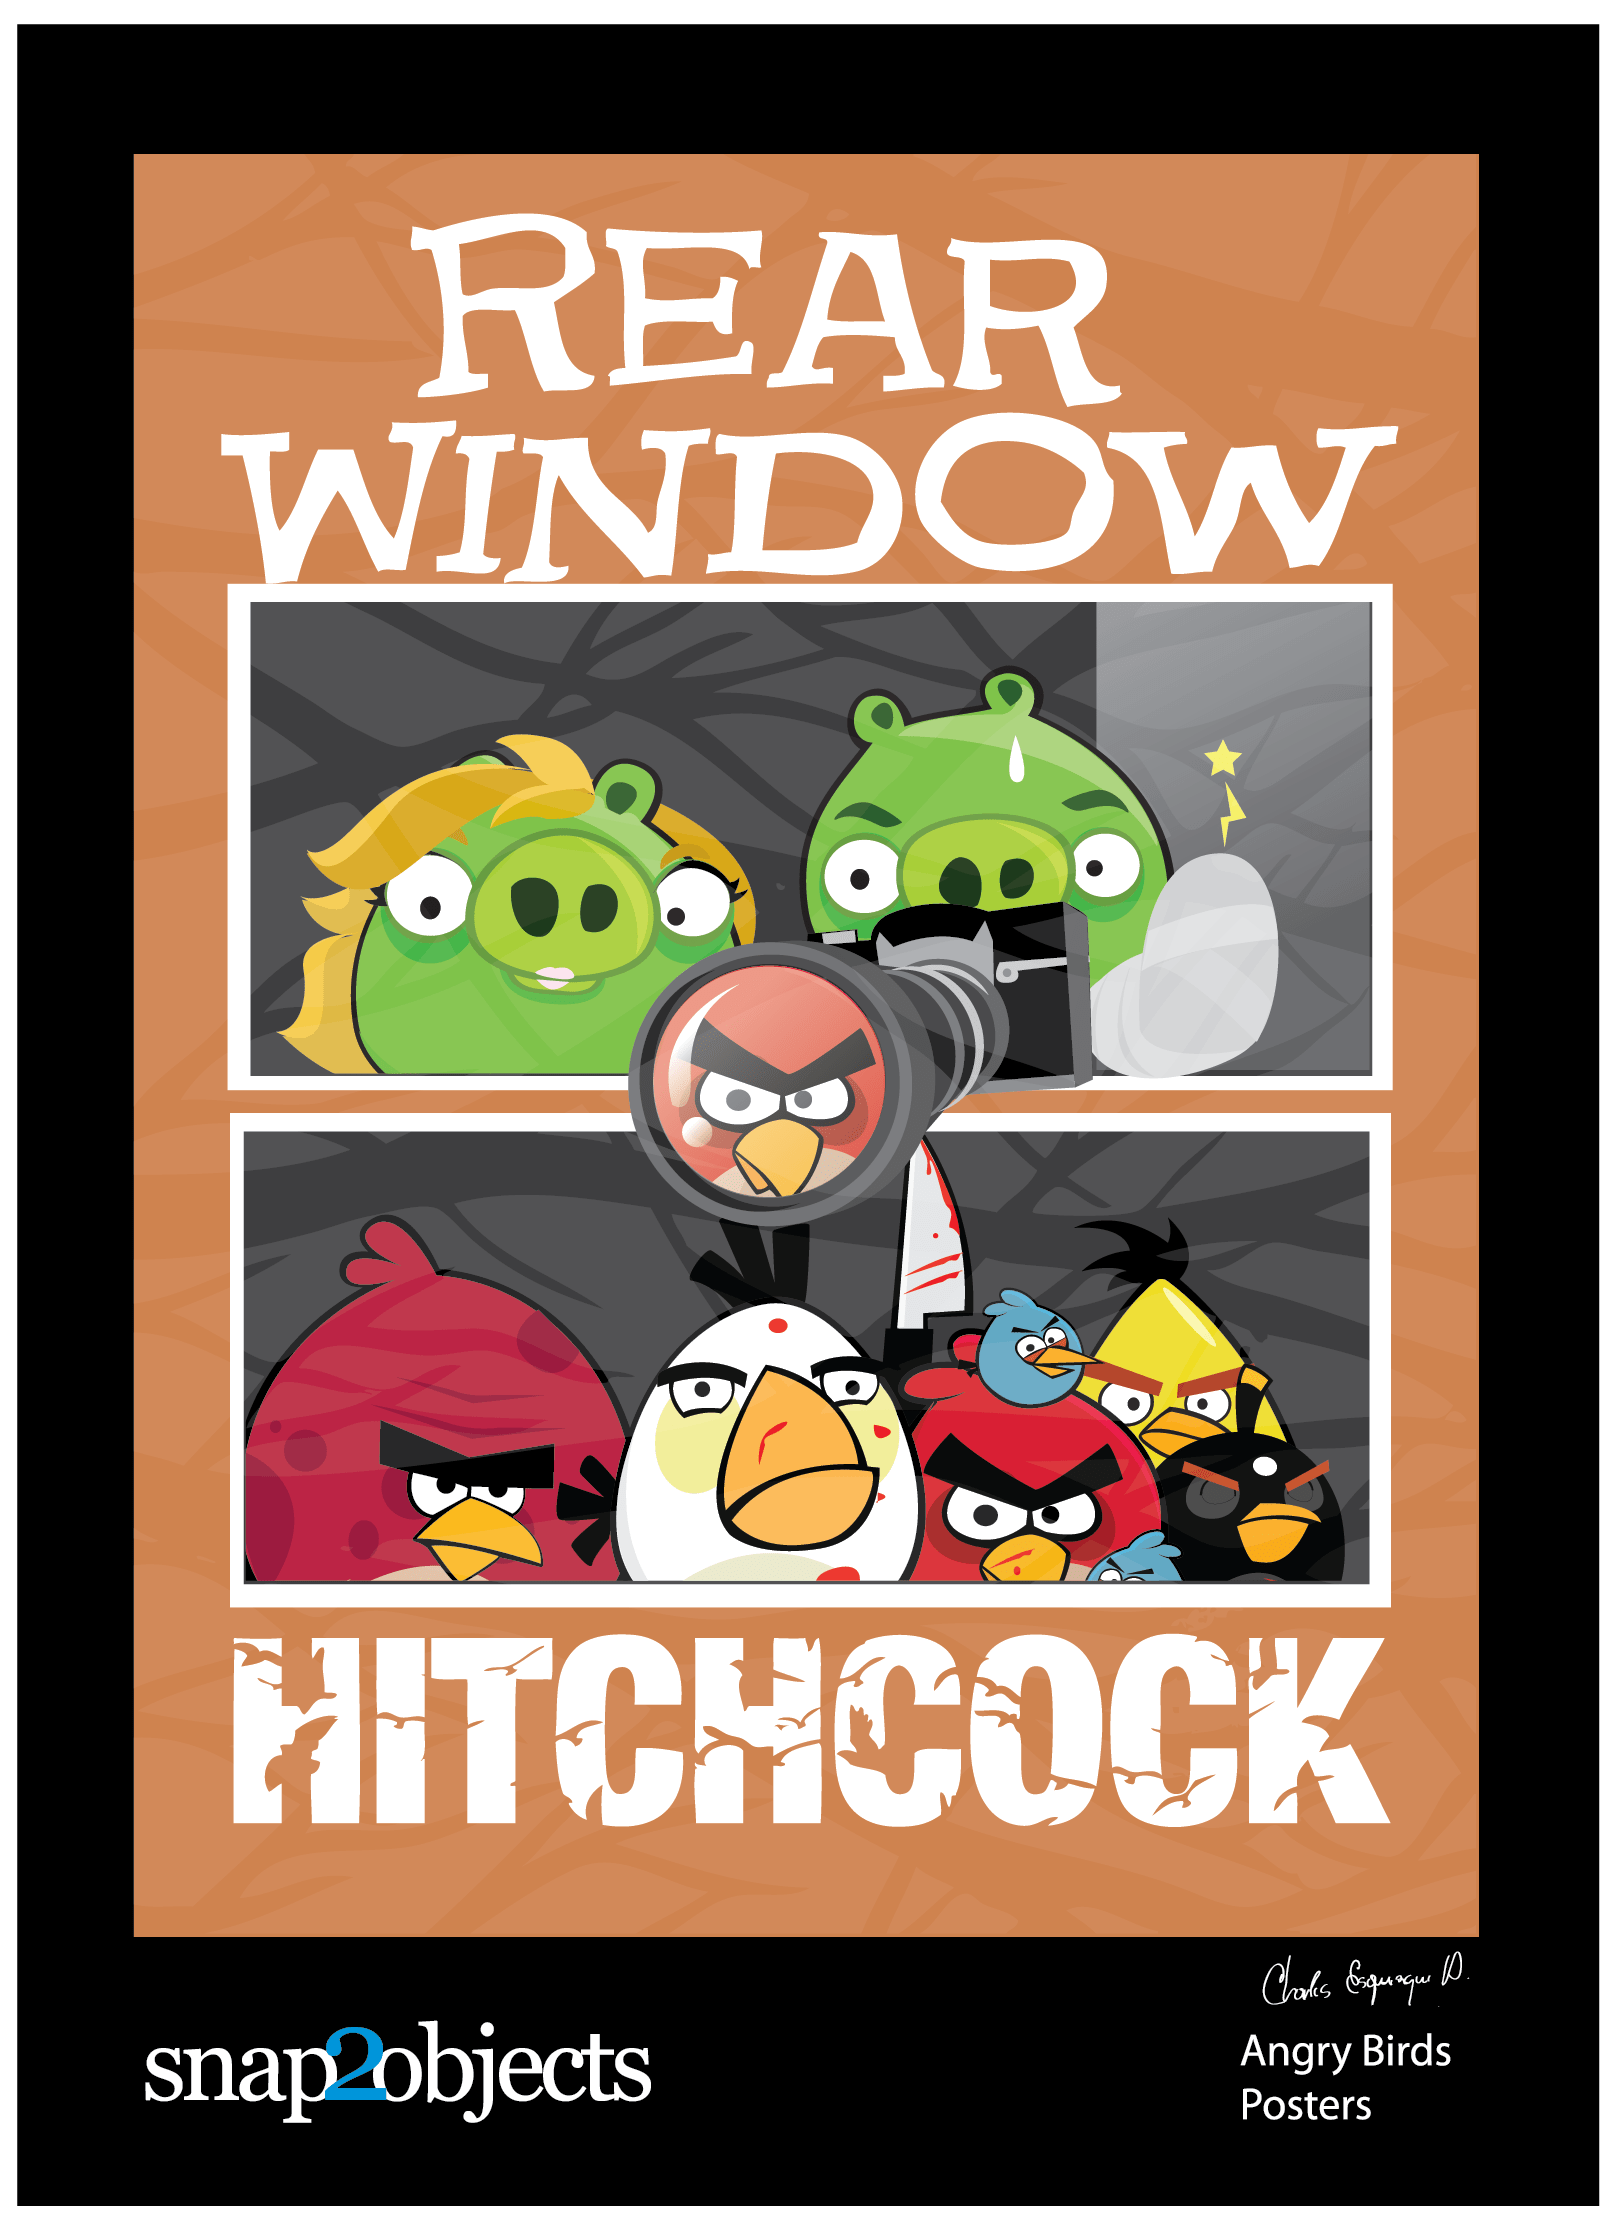 Hitchcock Angry Birds Posters Snap2objects